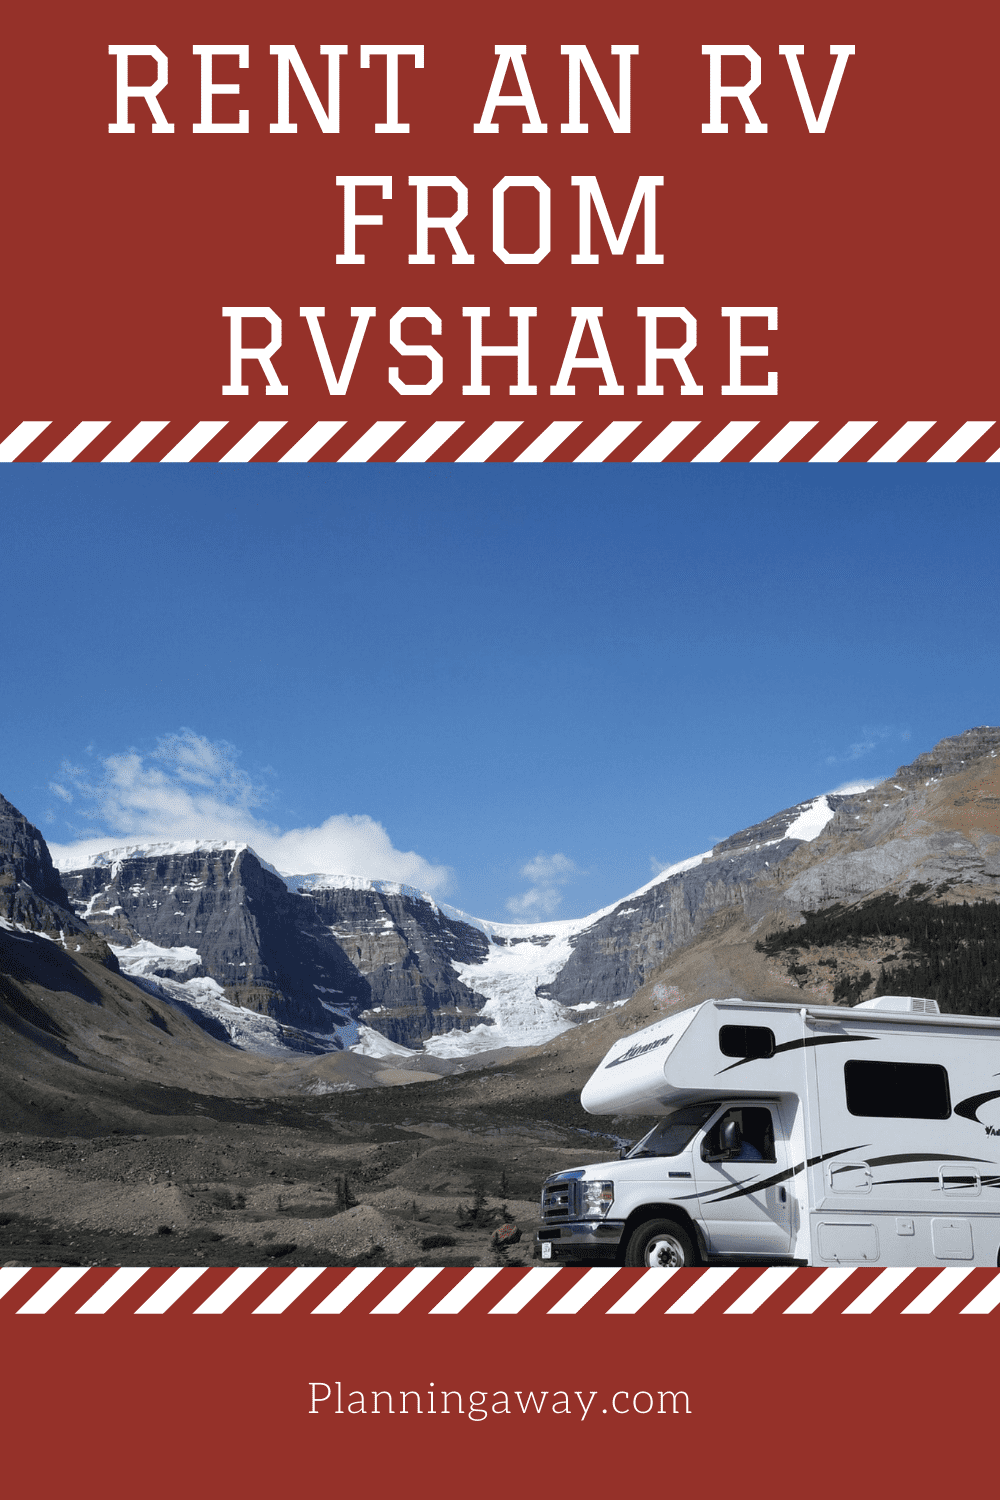 Rent and RV on RVshare